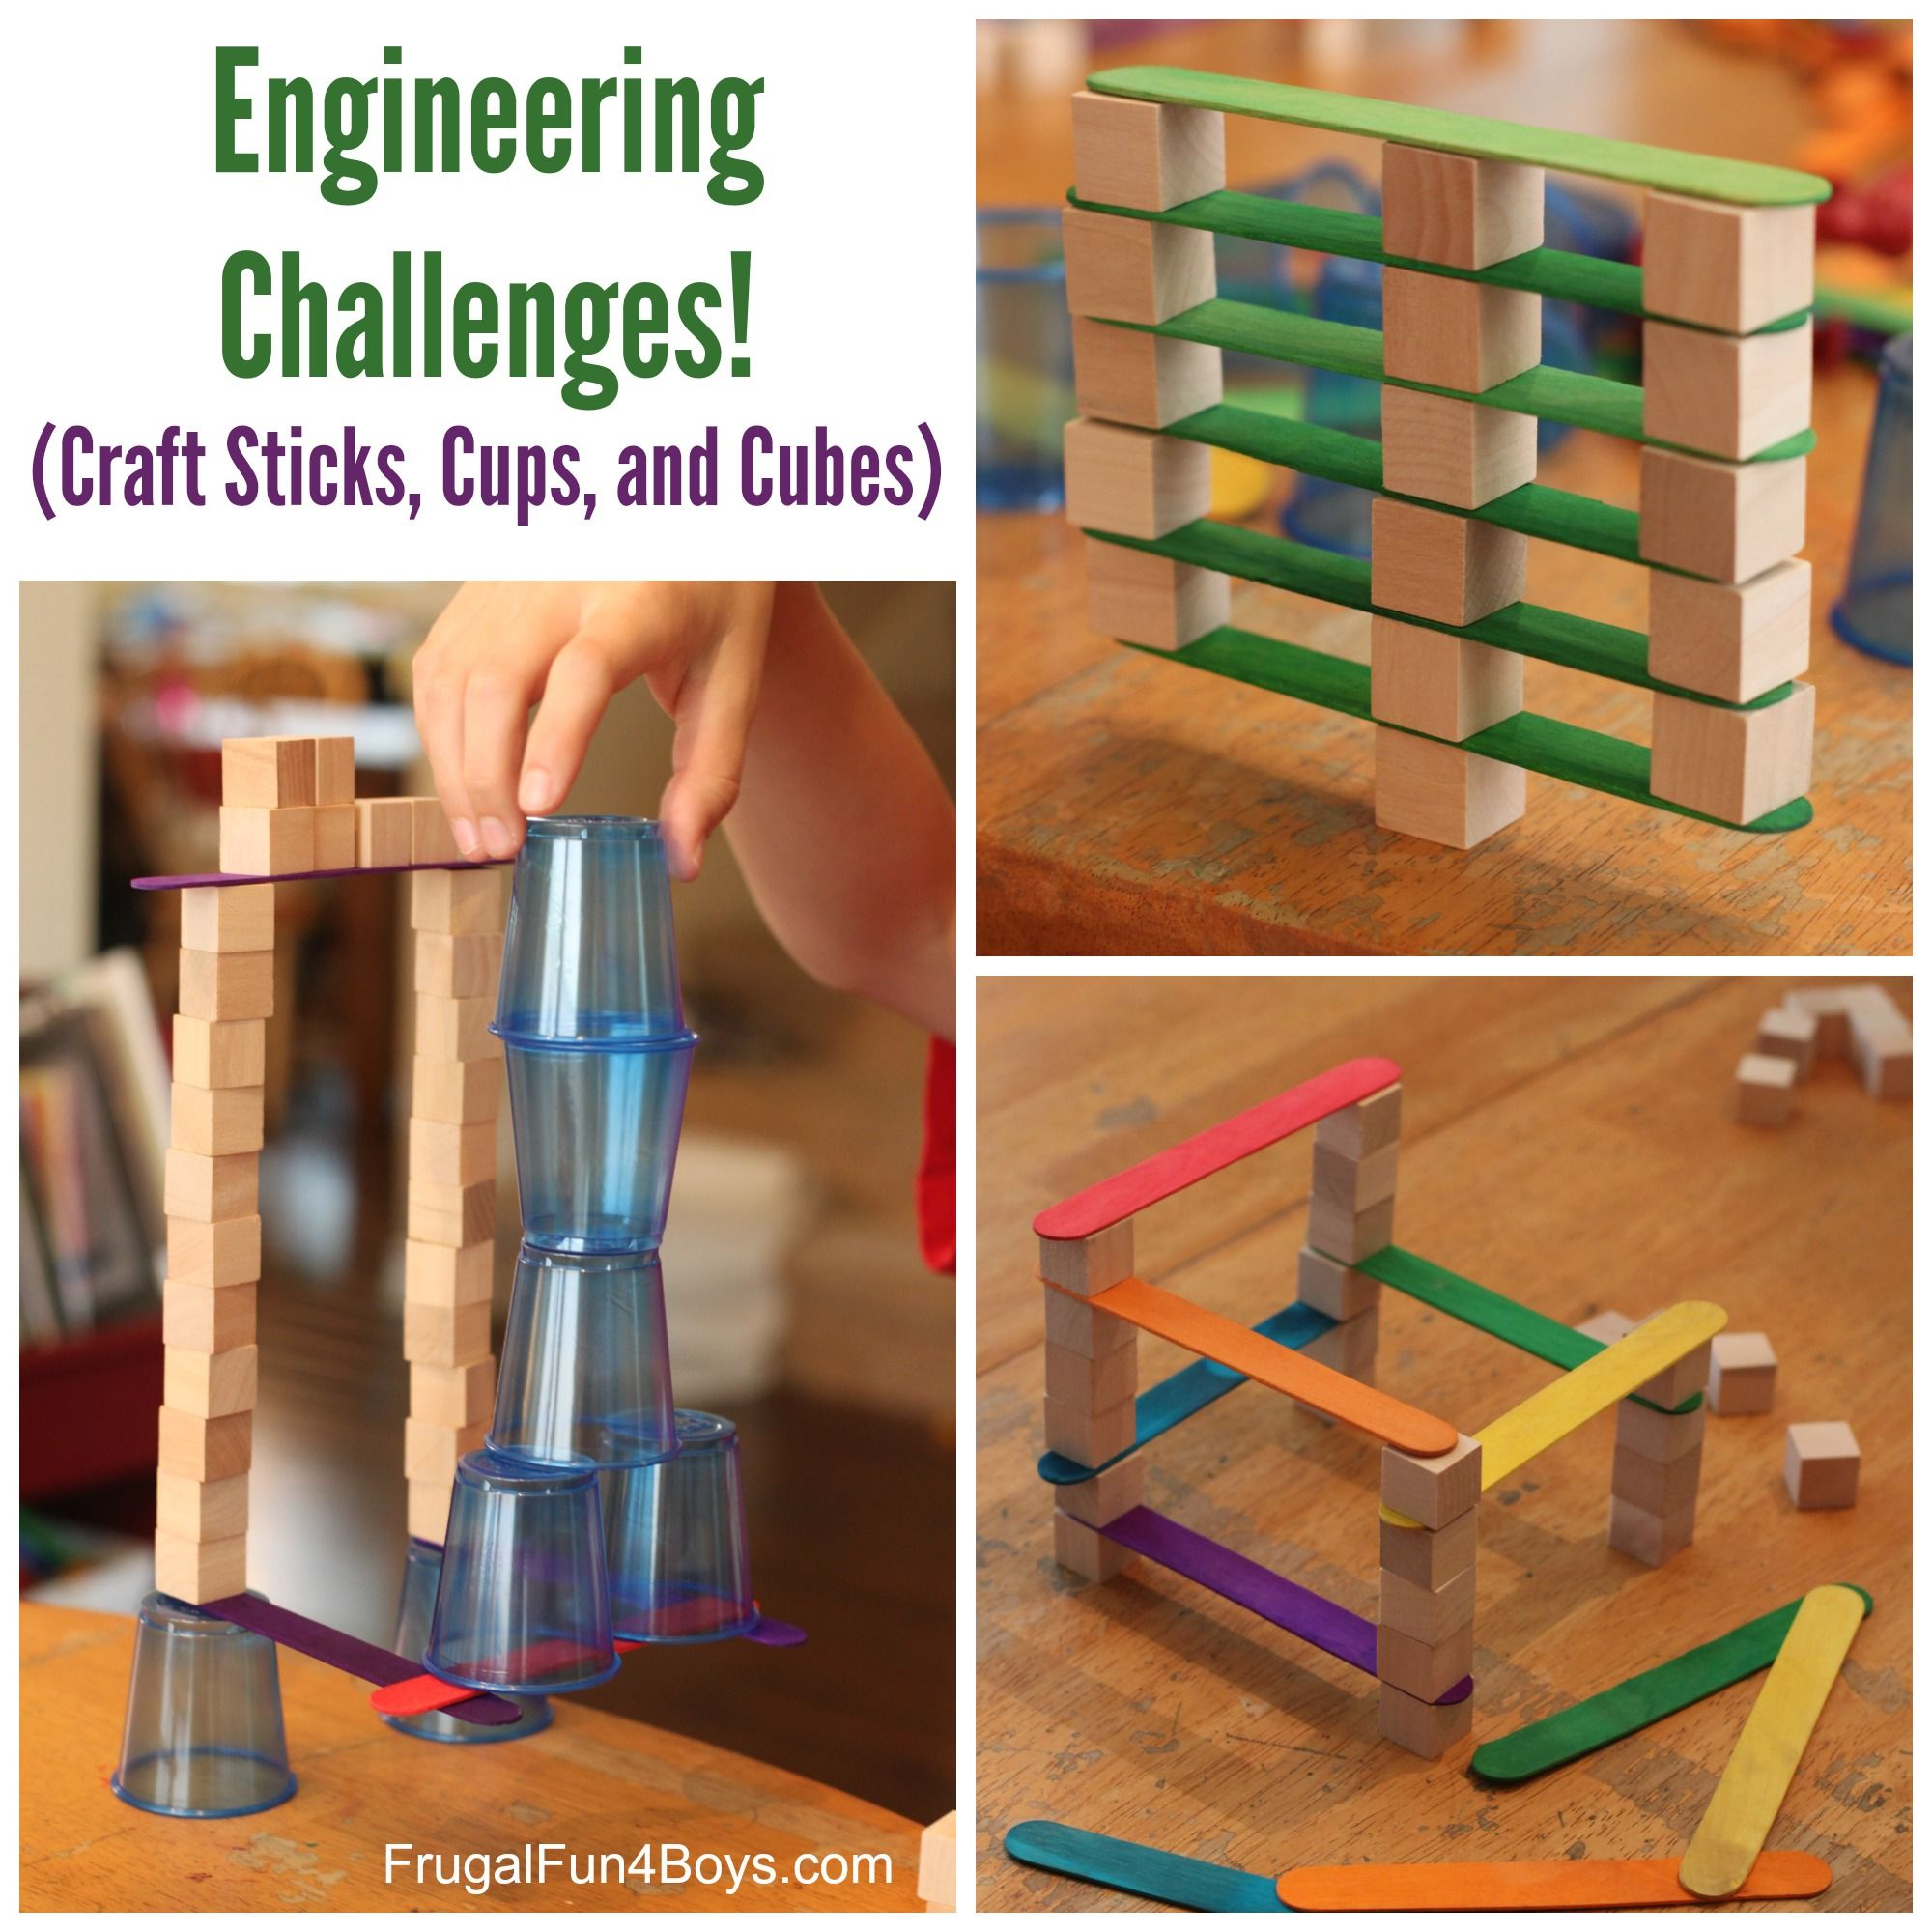 Quick Stem Challenge For Kids: 4 Engineering Challenges For Kids (Cups, Craft Sticks, And